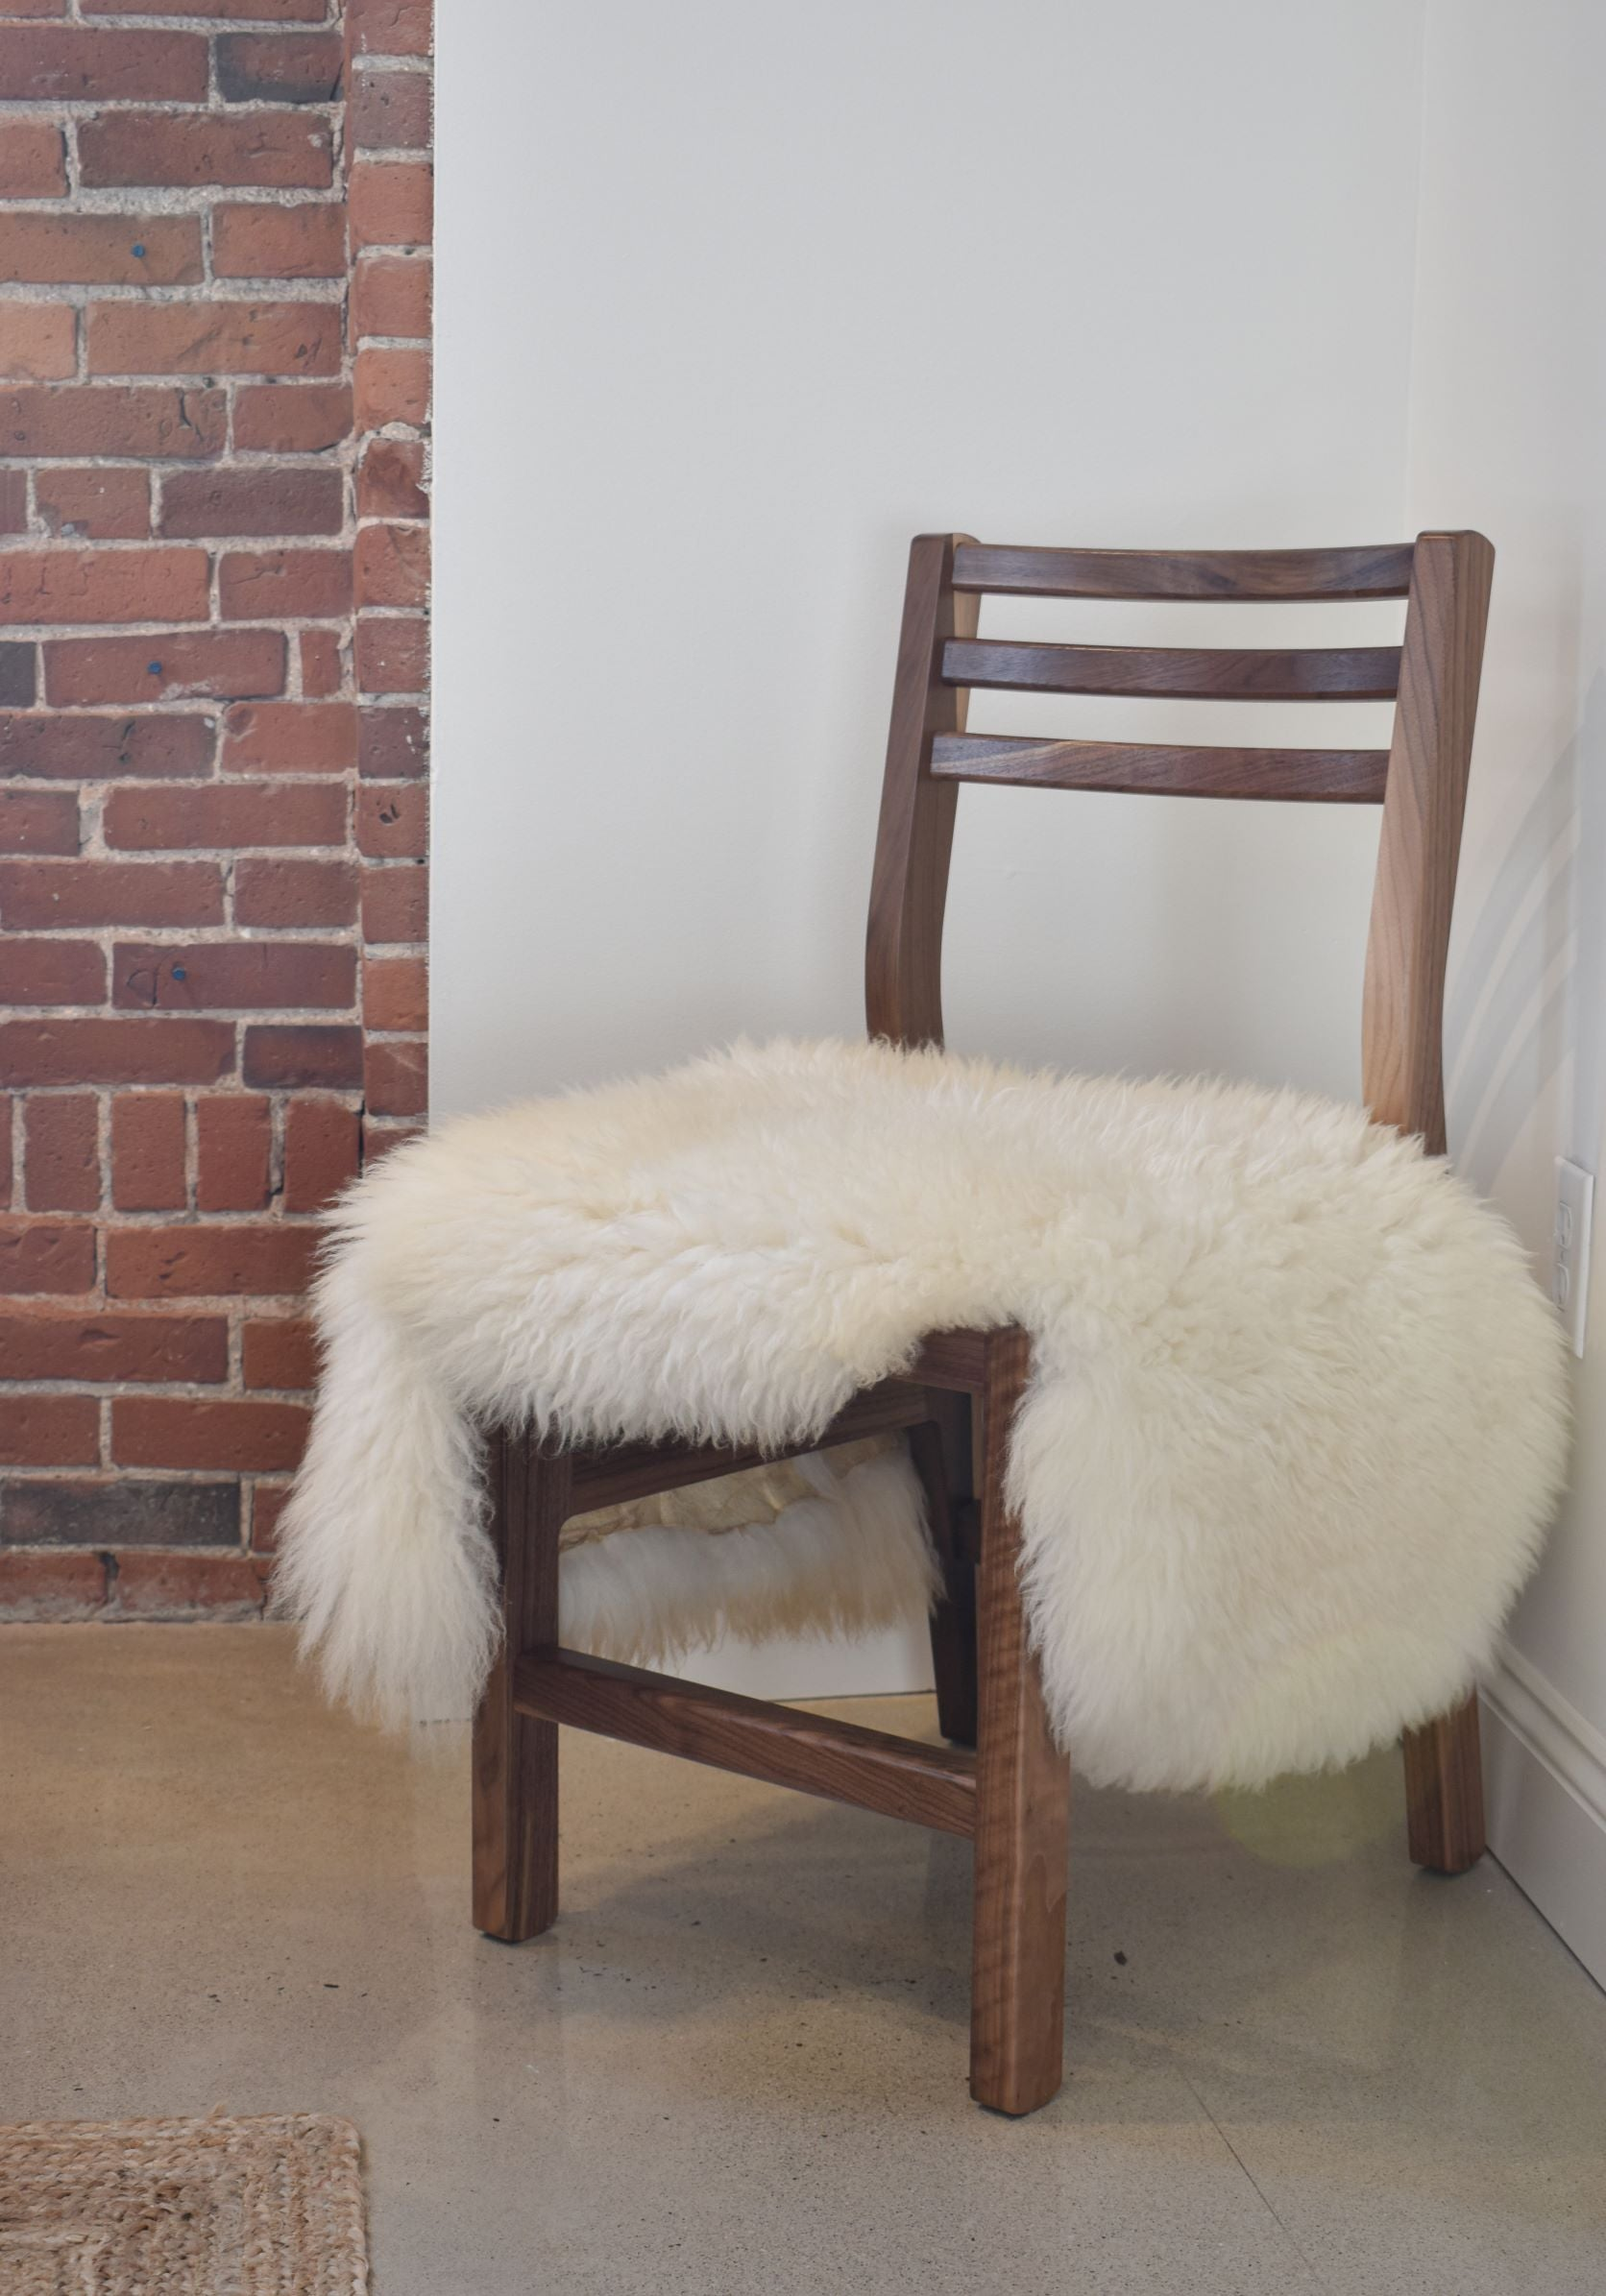 Solid walnut wood dining chair with white sheepskin throw on seat